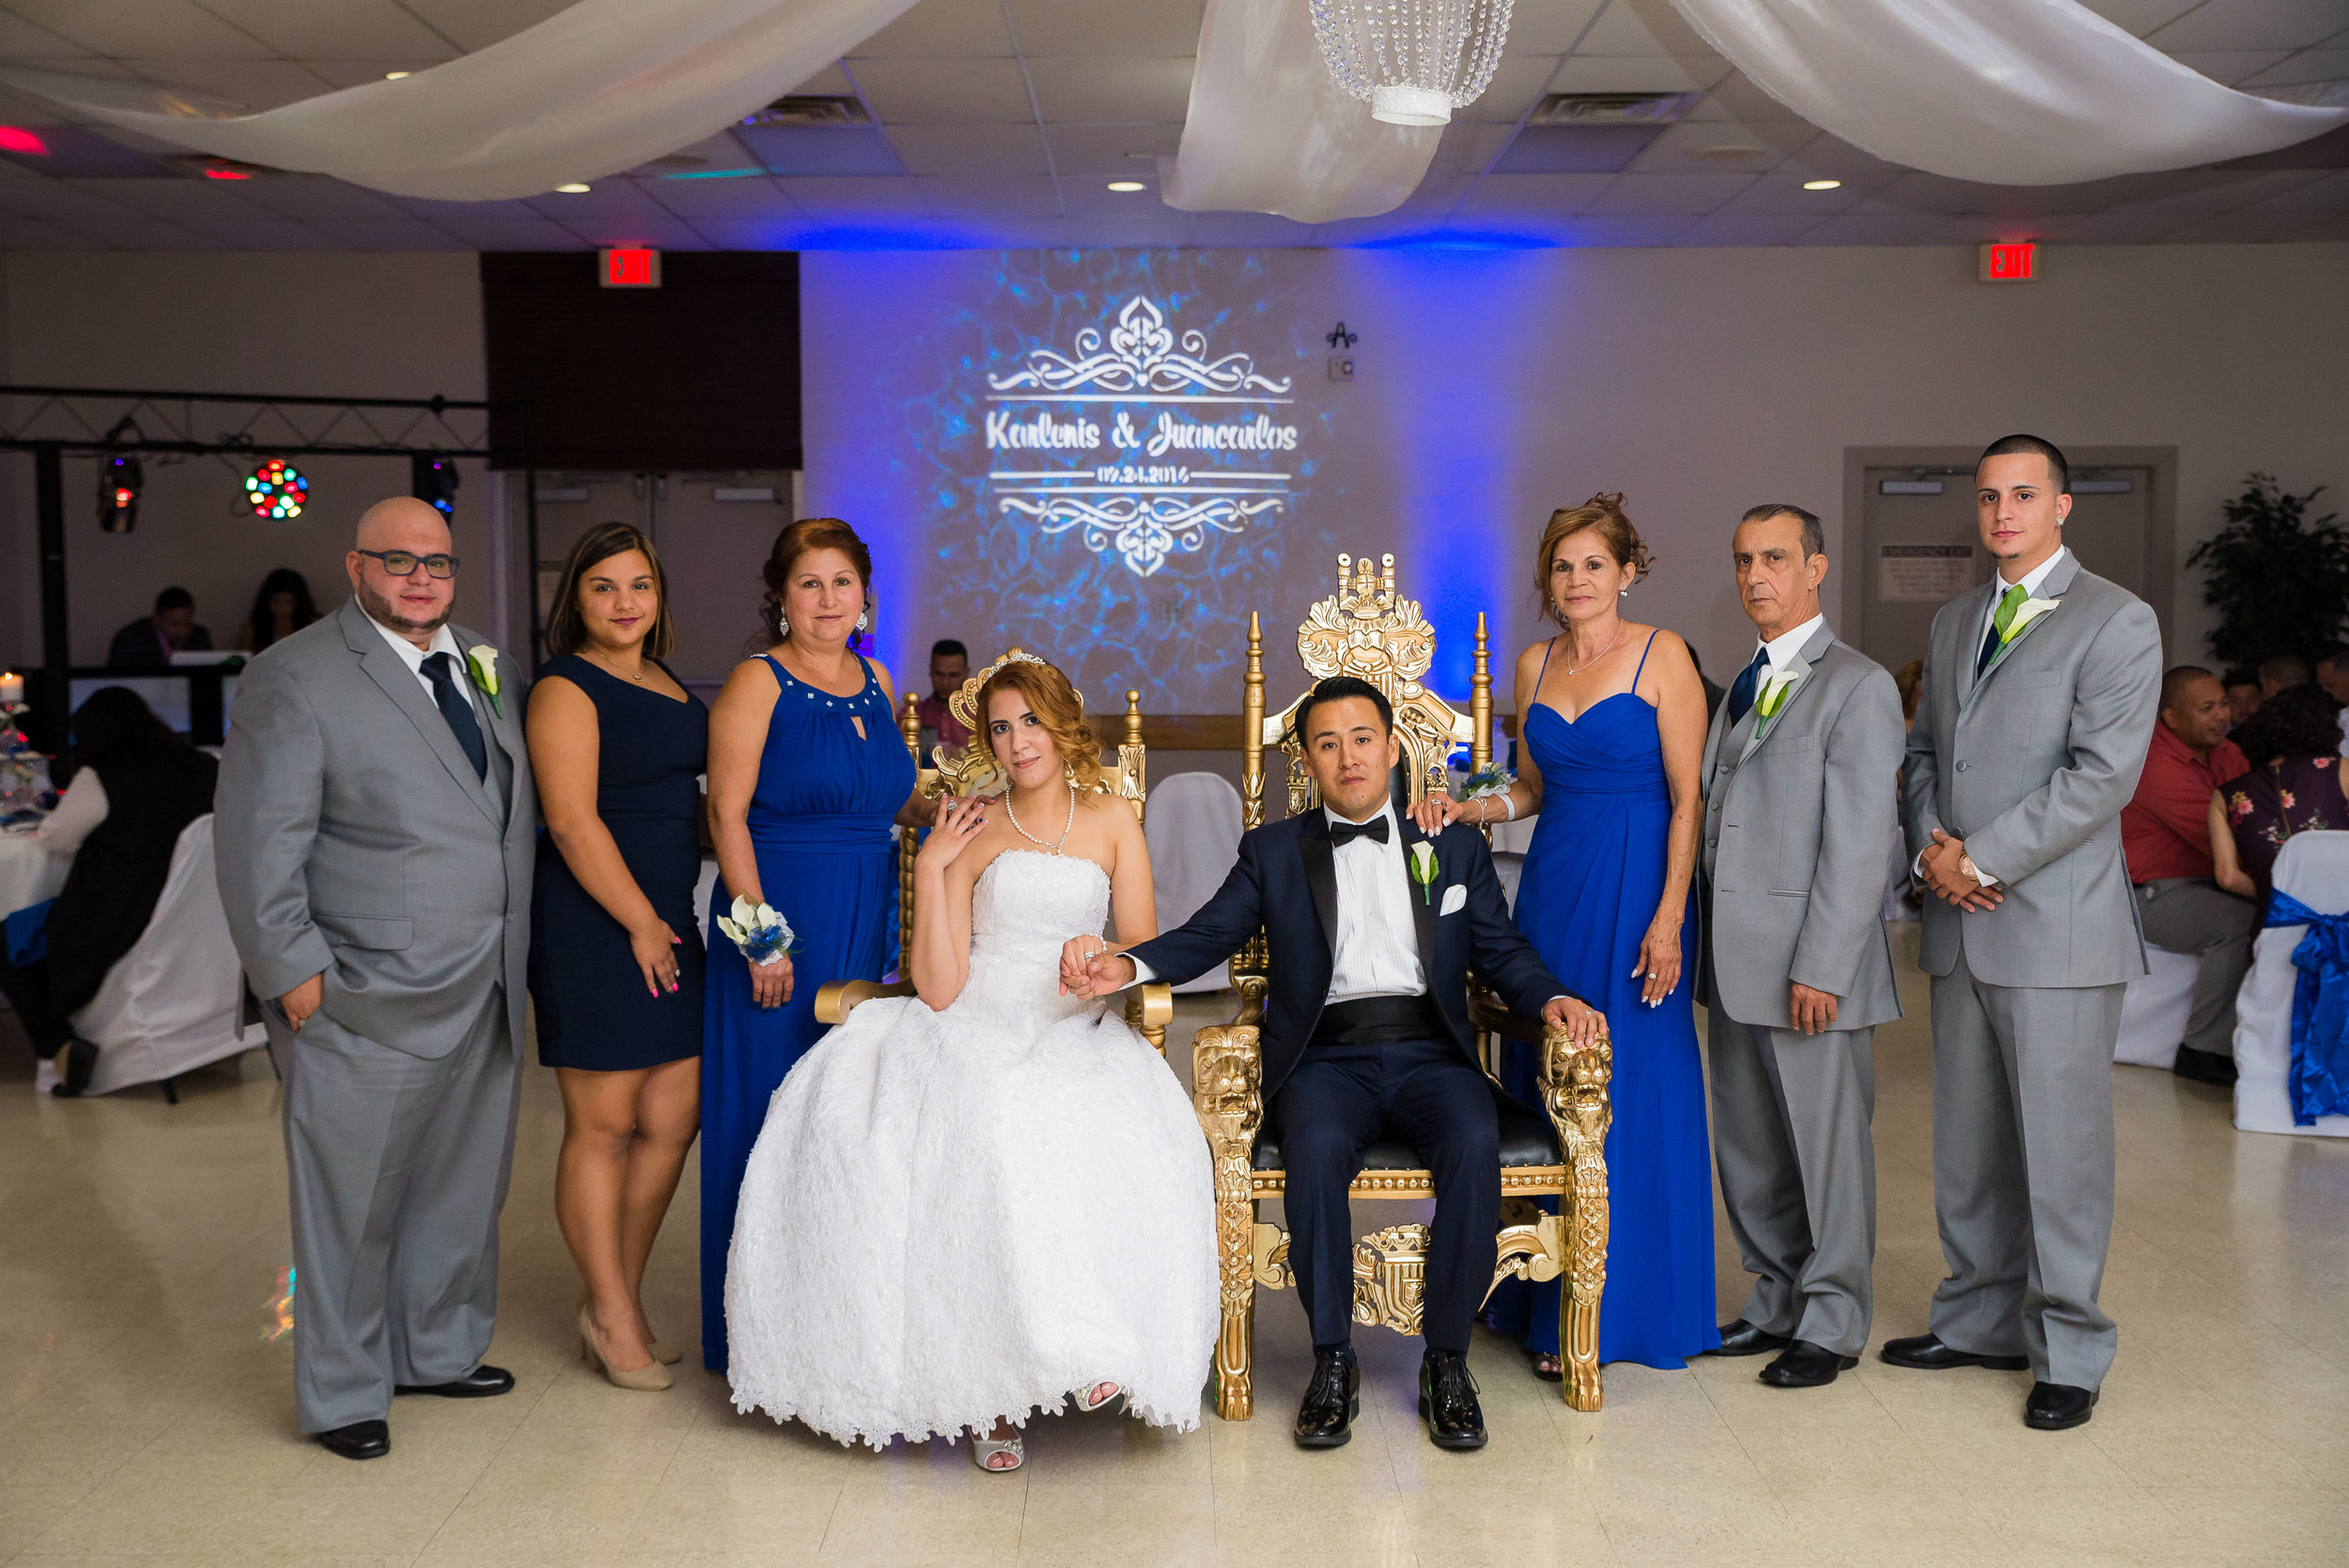 Karlenis-Juancarlos-Wedding-Garcia-Photography-6892.jpg